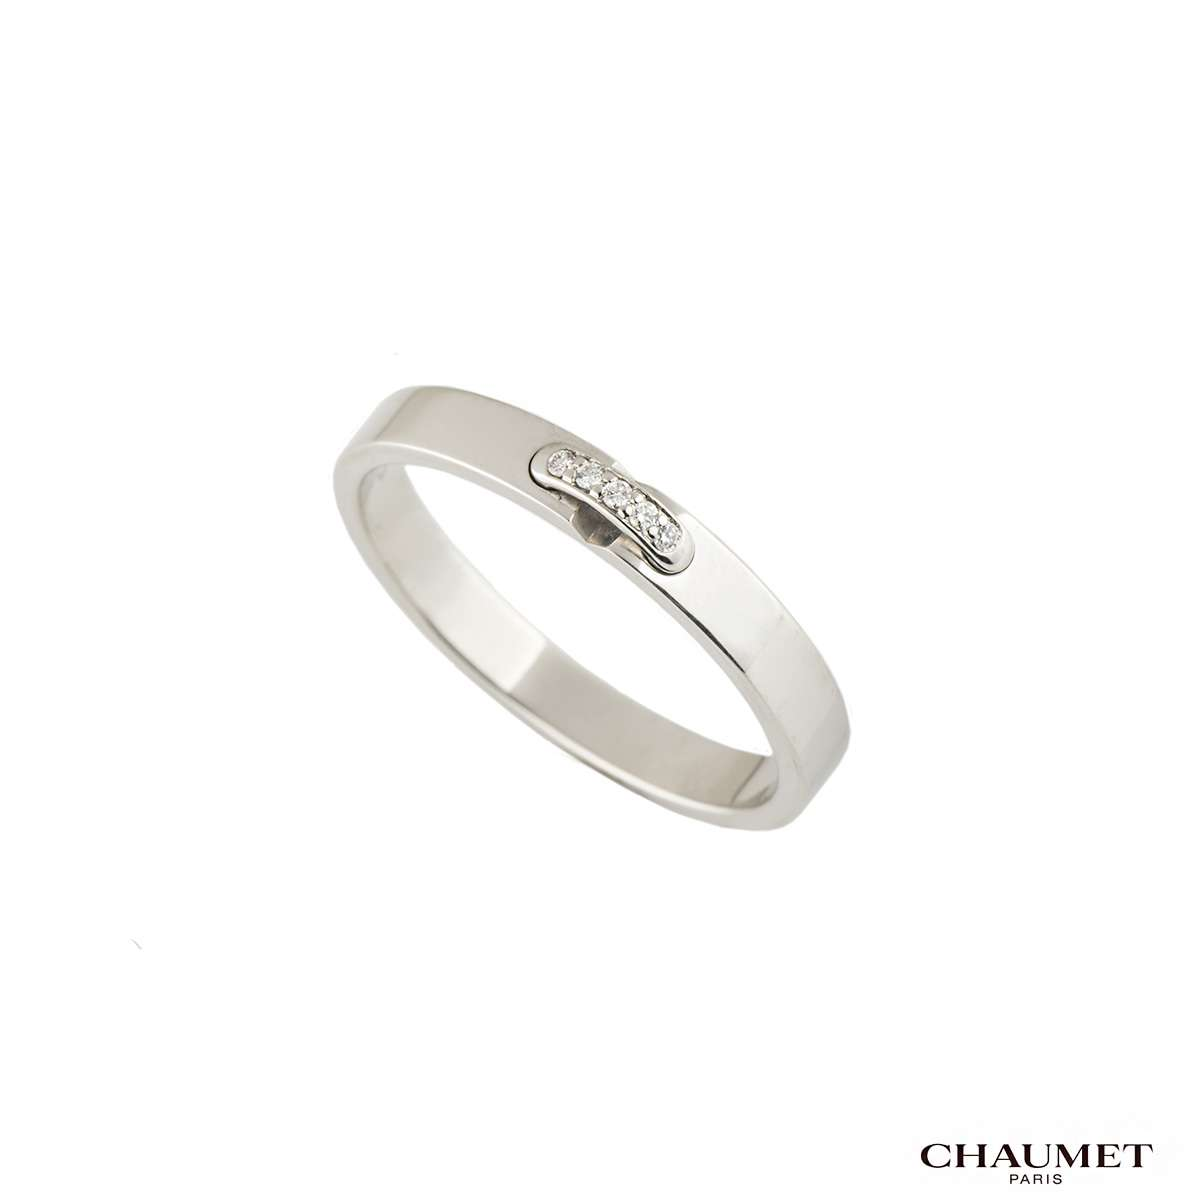 Status for Chaumet wedding ring